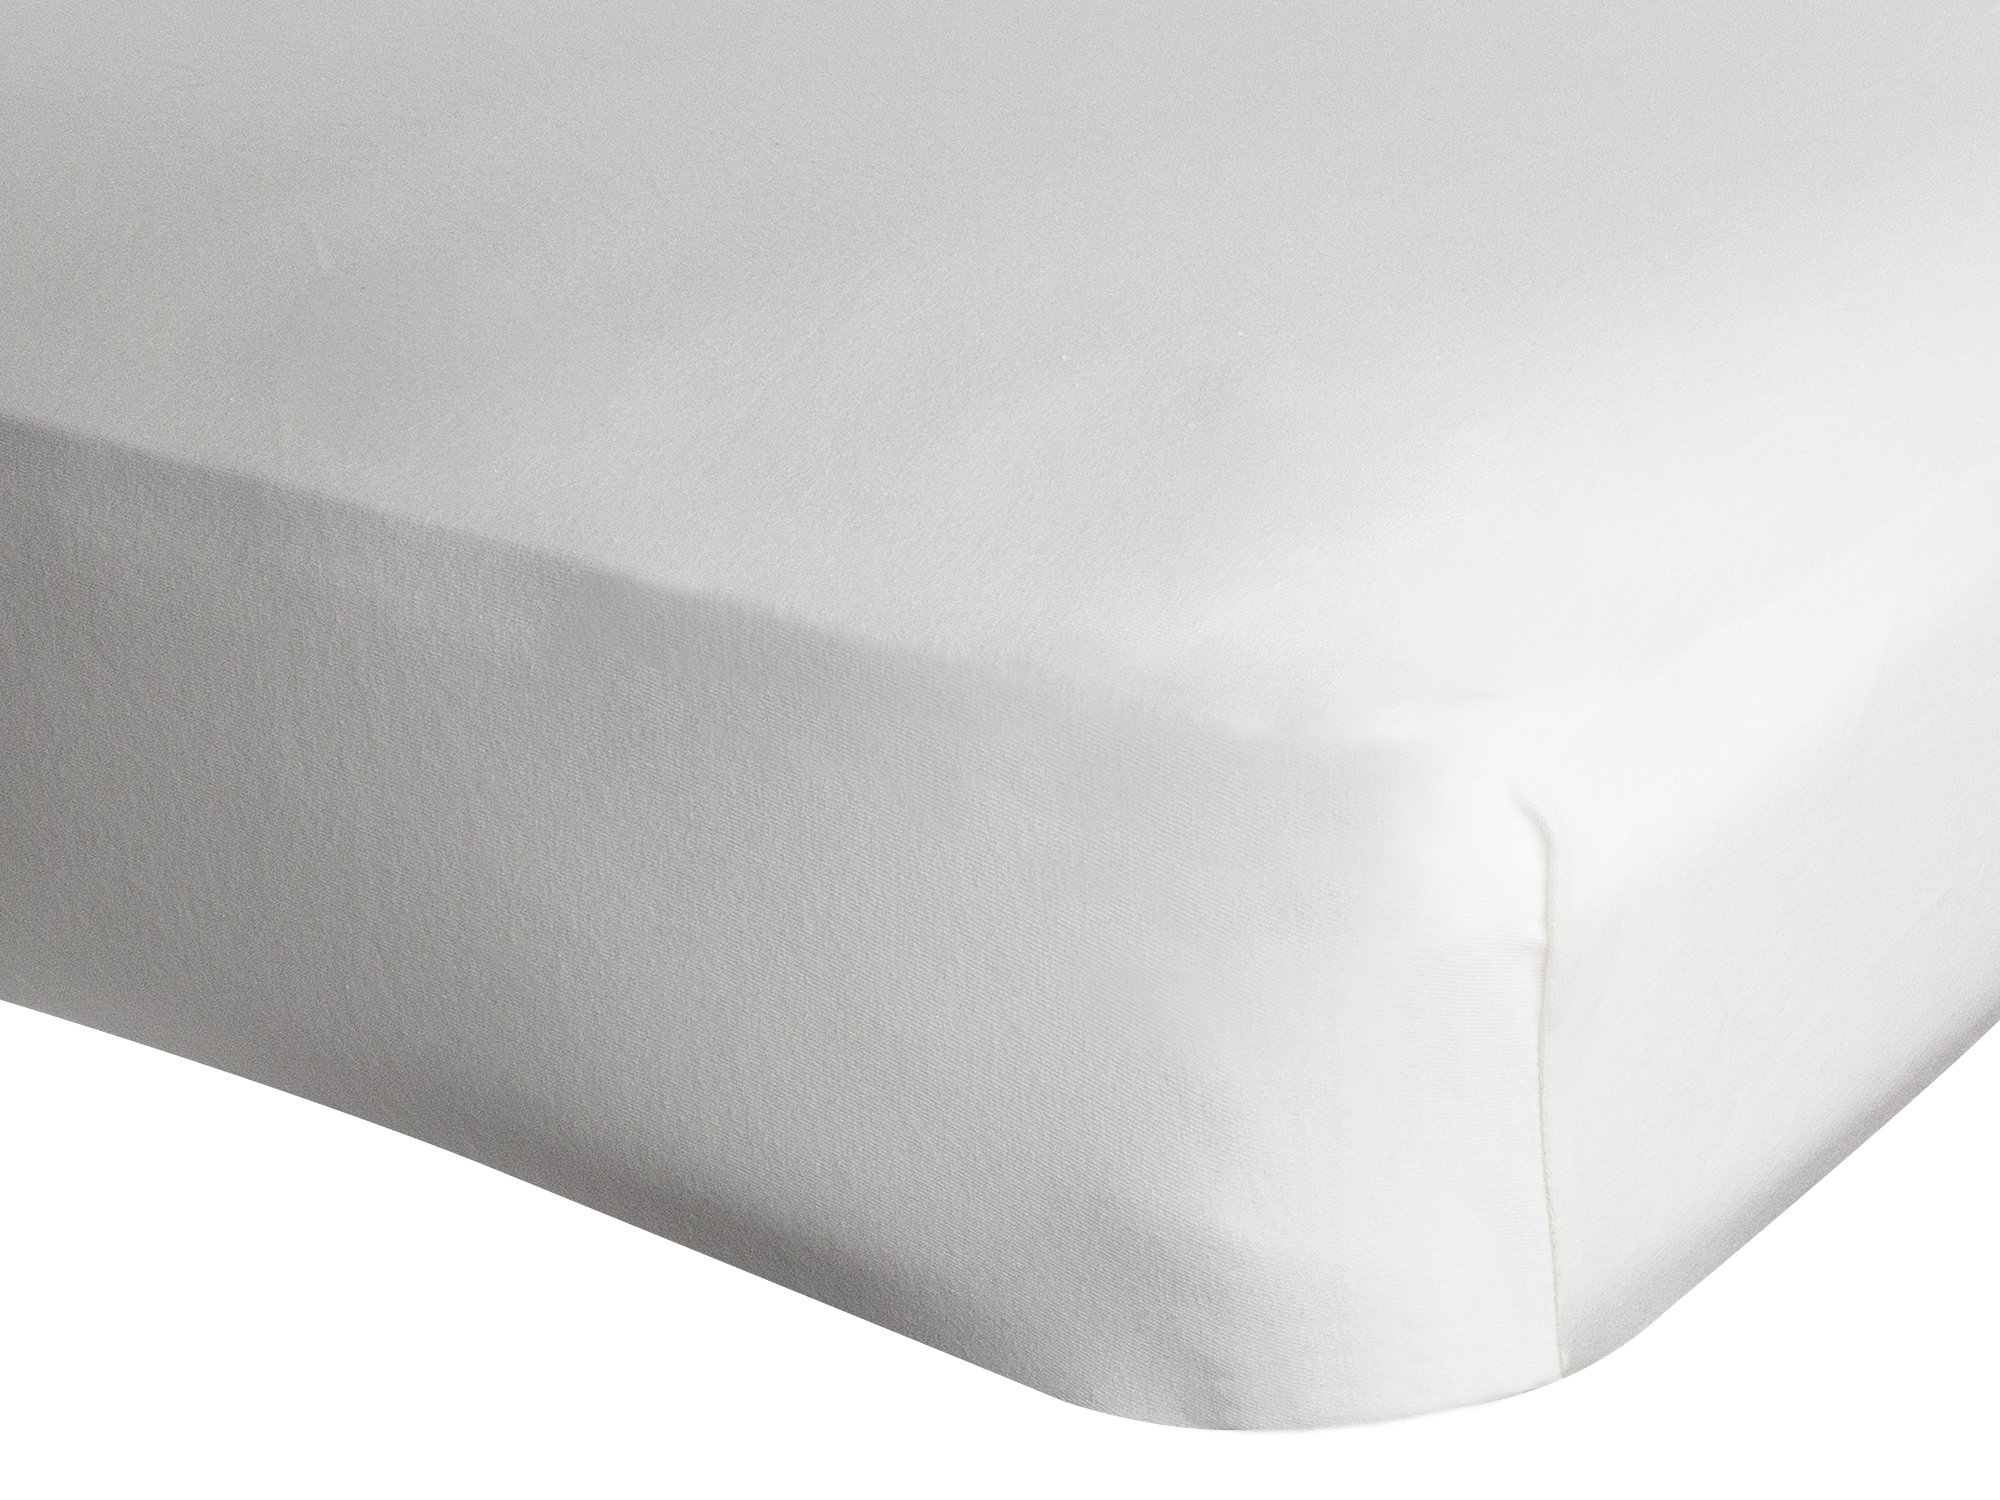 Organic Fitted Crib Sheet - GOTS Certified -100% Organic Cotton- Jersey Knit - More than Organic, Ultra-comfy, Clean and Safe Sheets (Natural/Ecru/Off White) by Inspirational NEST (Image #5)